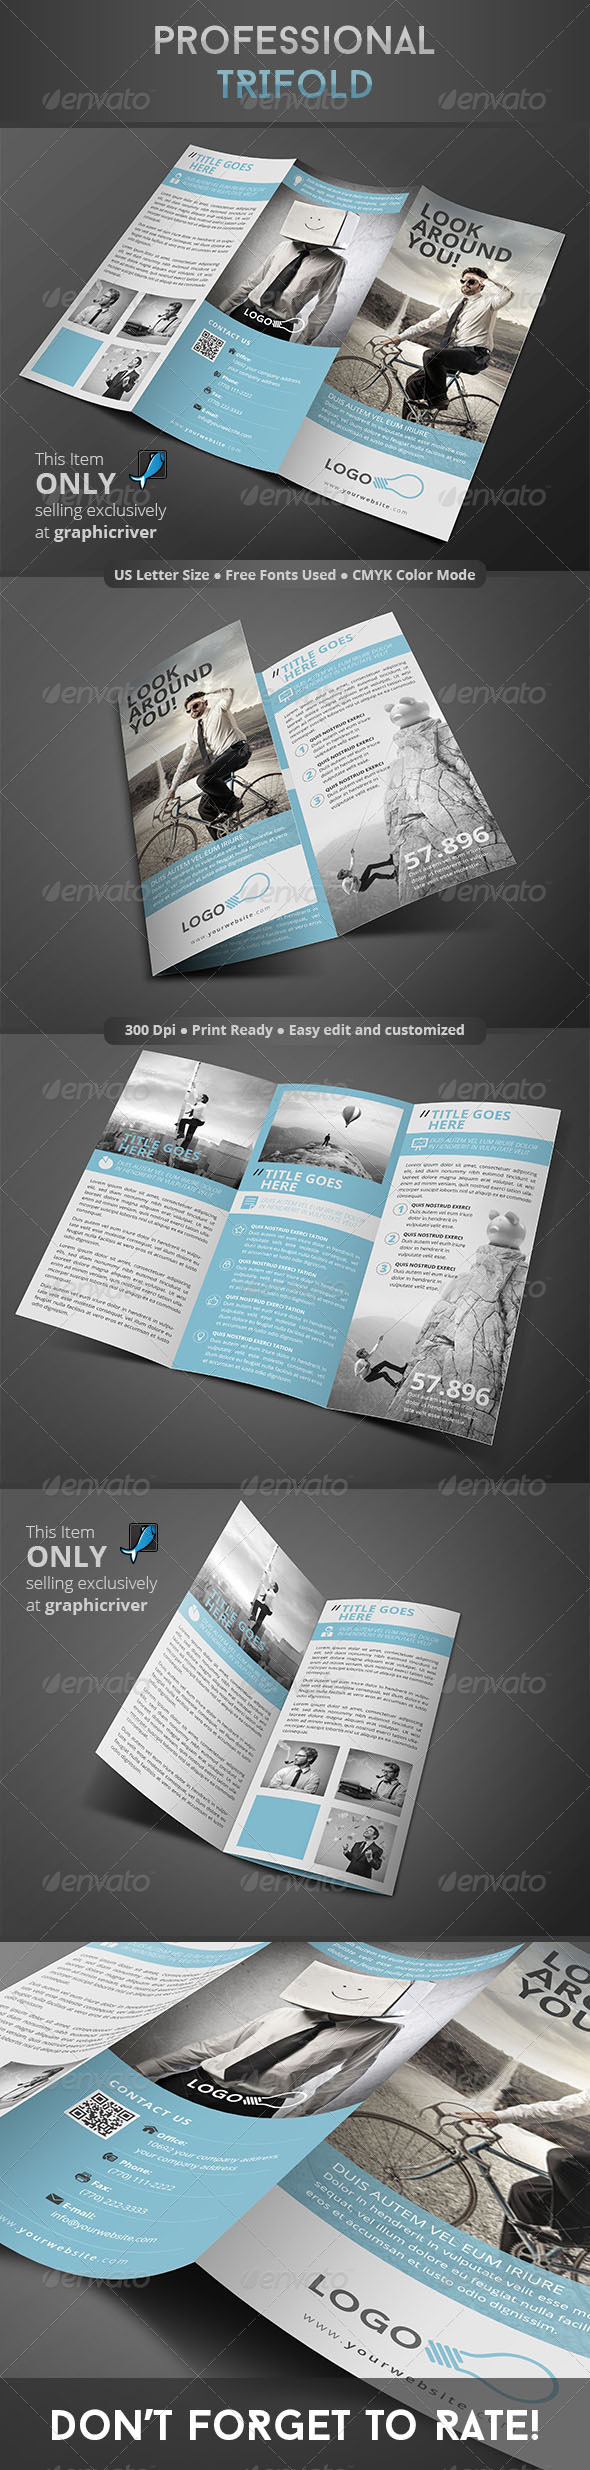 GraphicRiver Professional Trifold 8319378